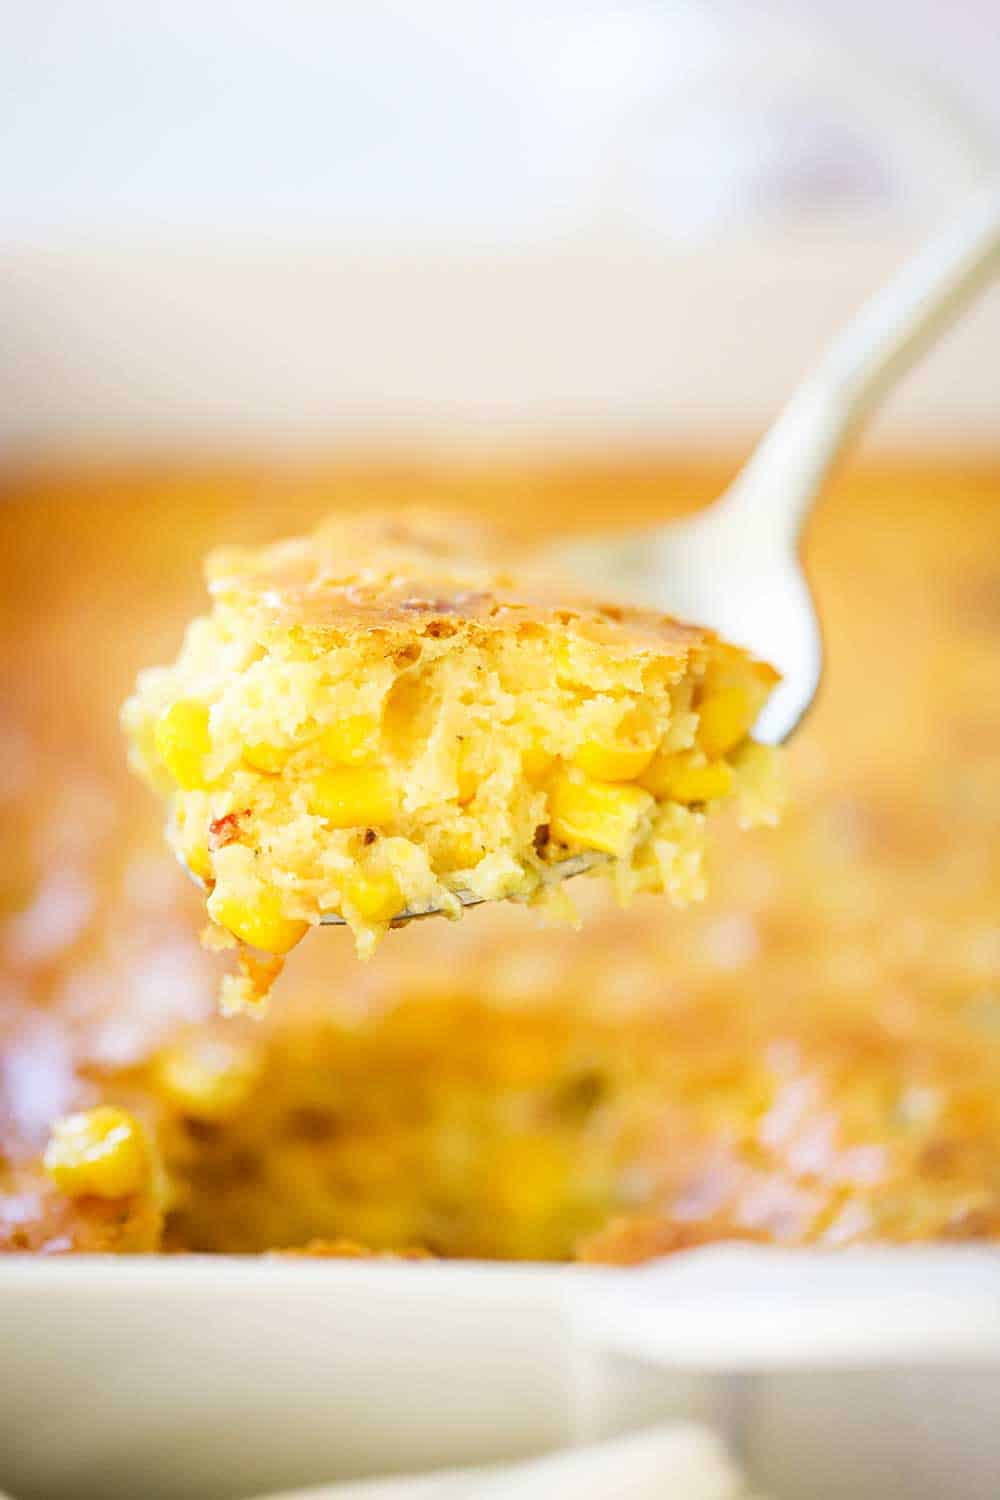 A gold serving spoon holding up a large scoop of corn casserole.